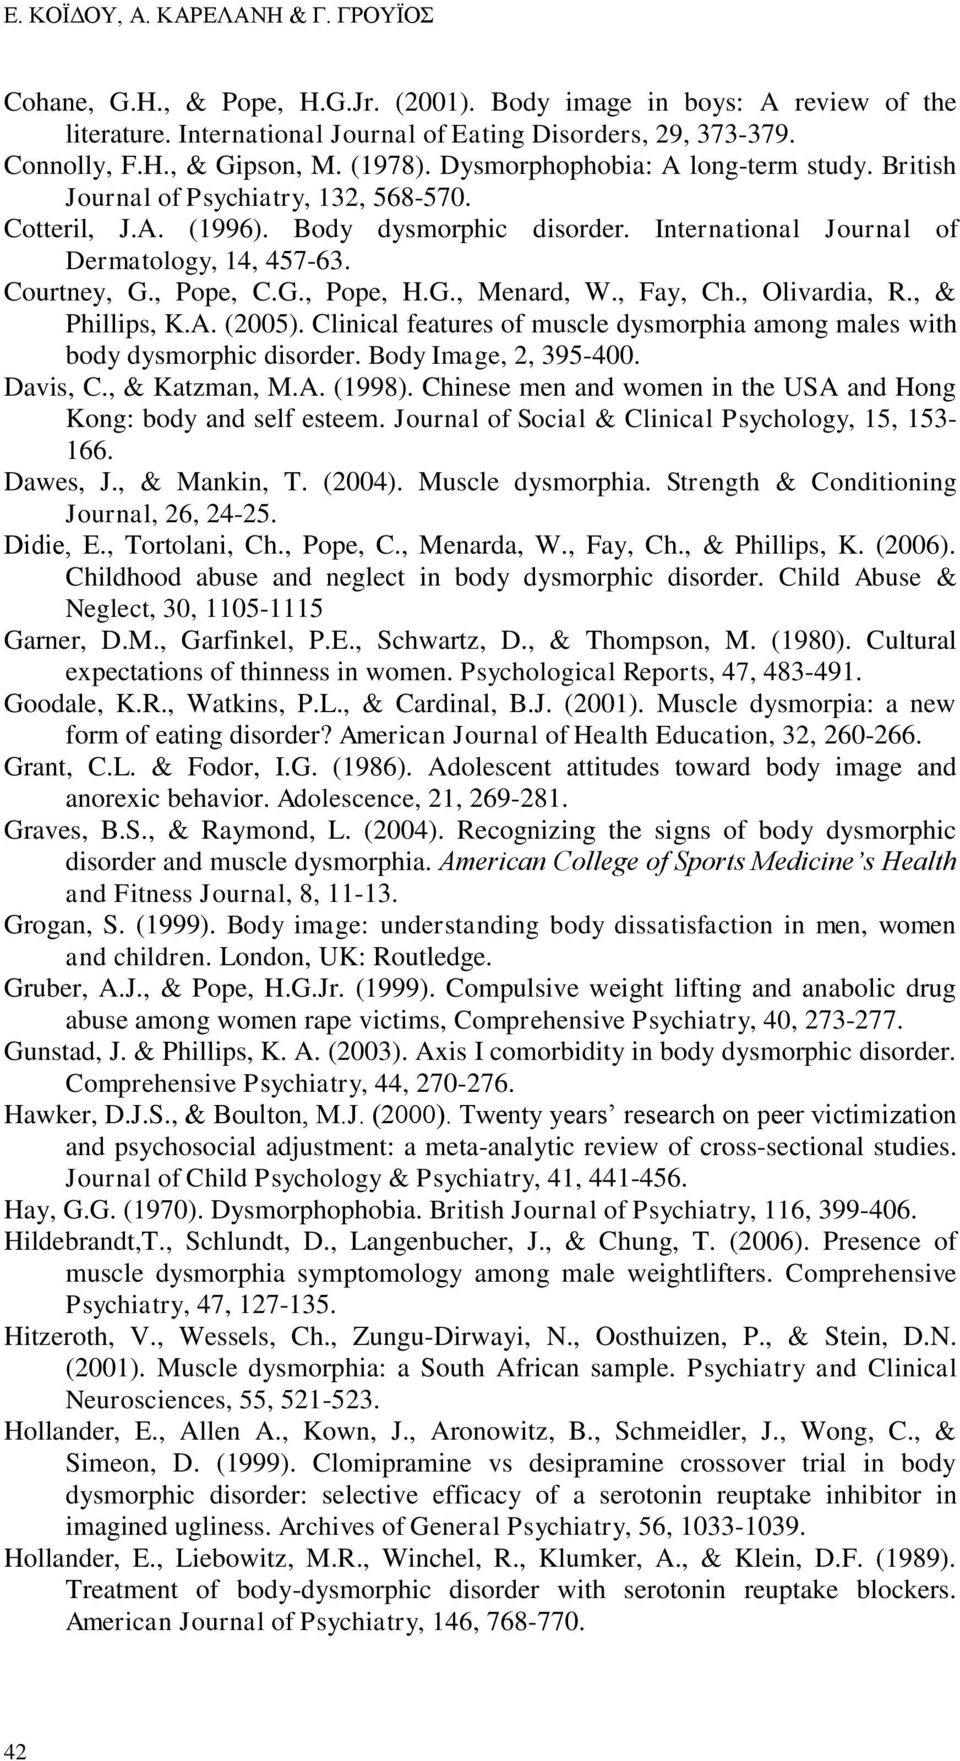 , Pope, C.G., Pope, H.G., Menard, W., Fay, Ch., Olivardia, R., & Phillips, K.A. (2005). Clinical features of muscle dysmorphia among males with body dysmorphic disorder. Body Image, 2, 395-400.